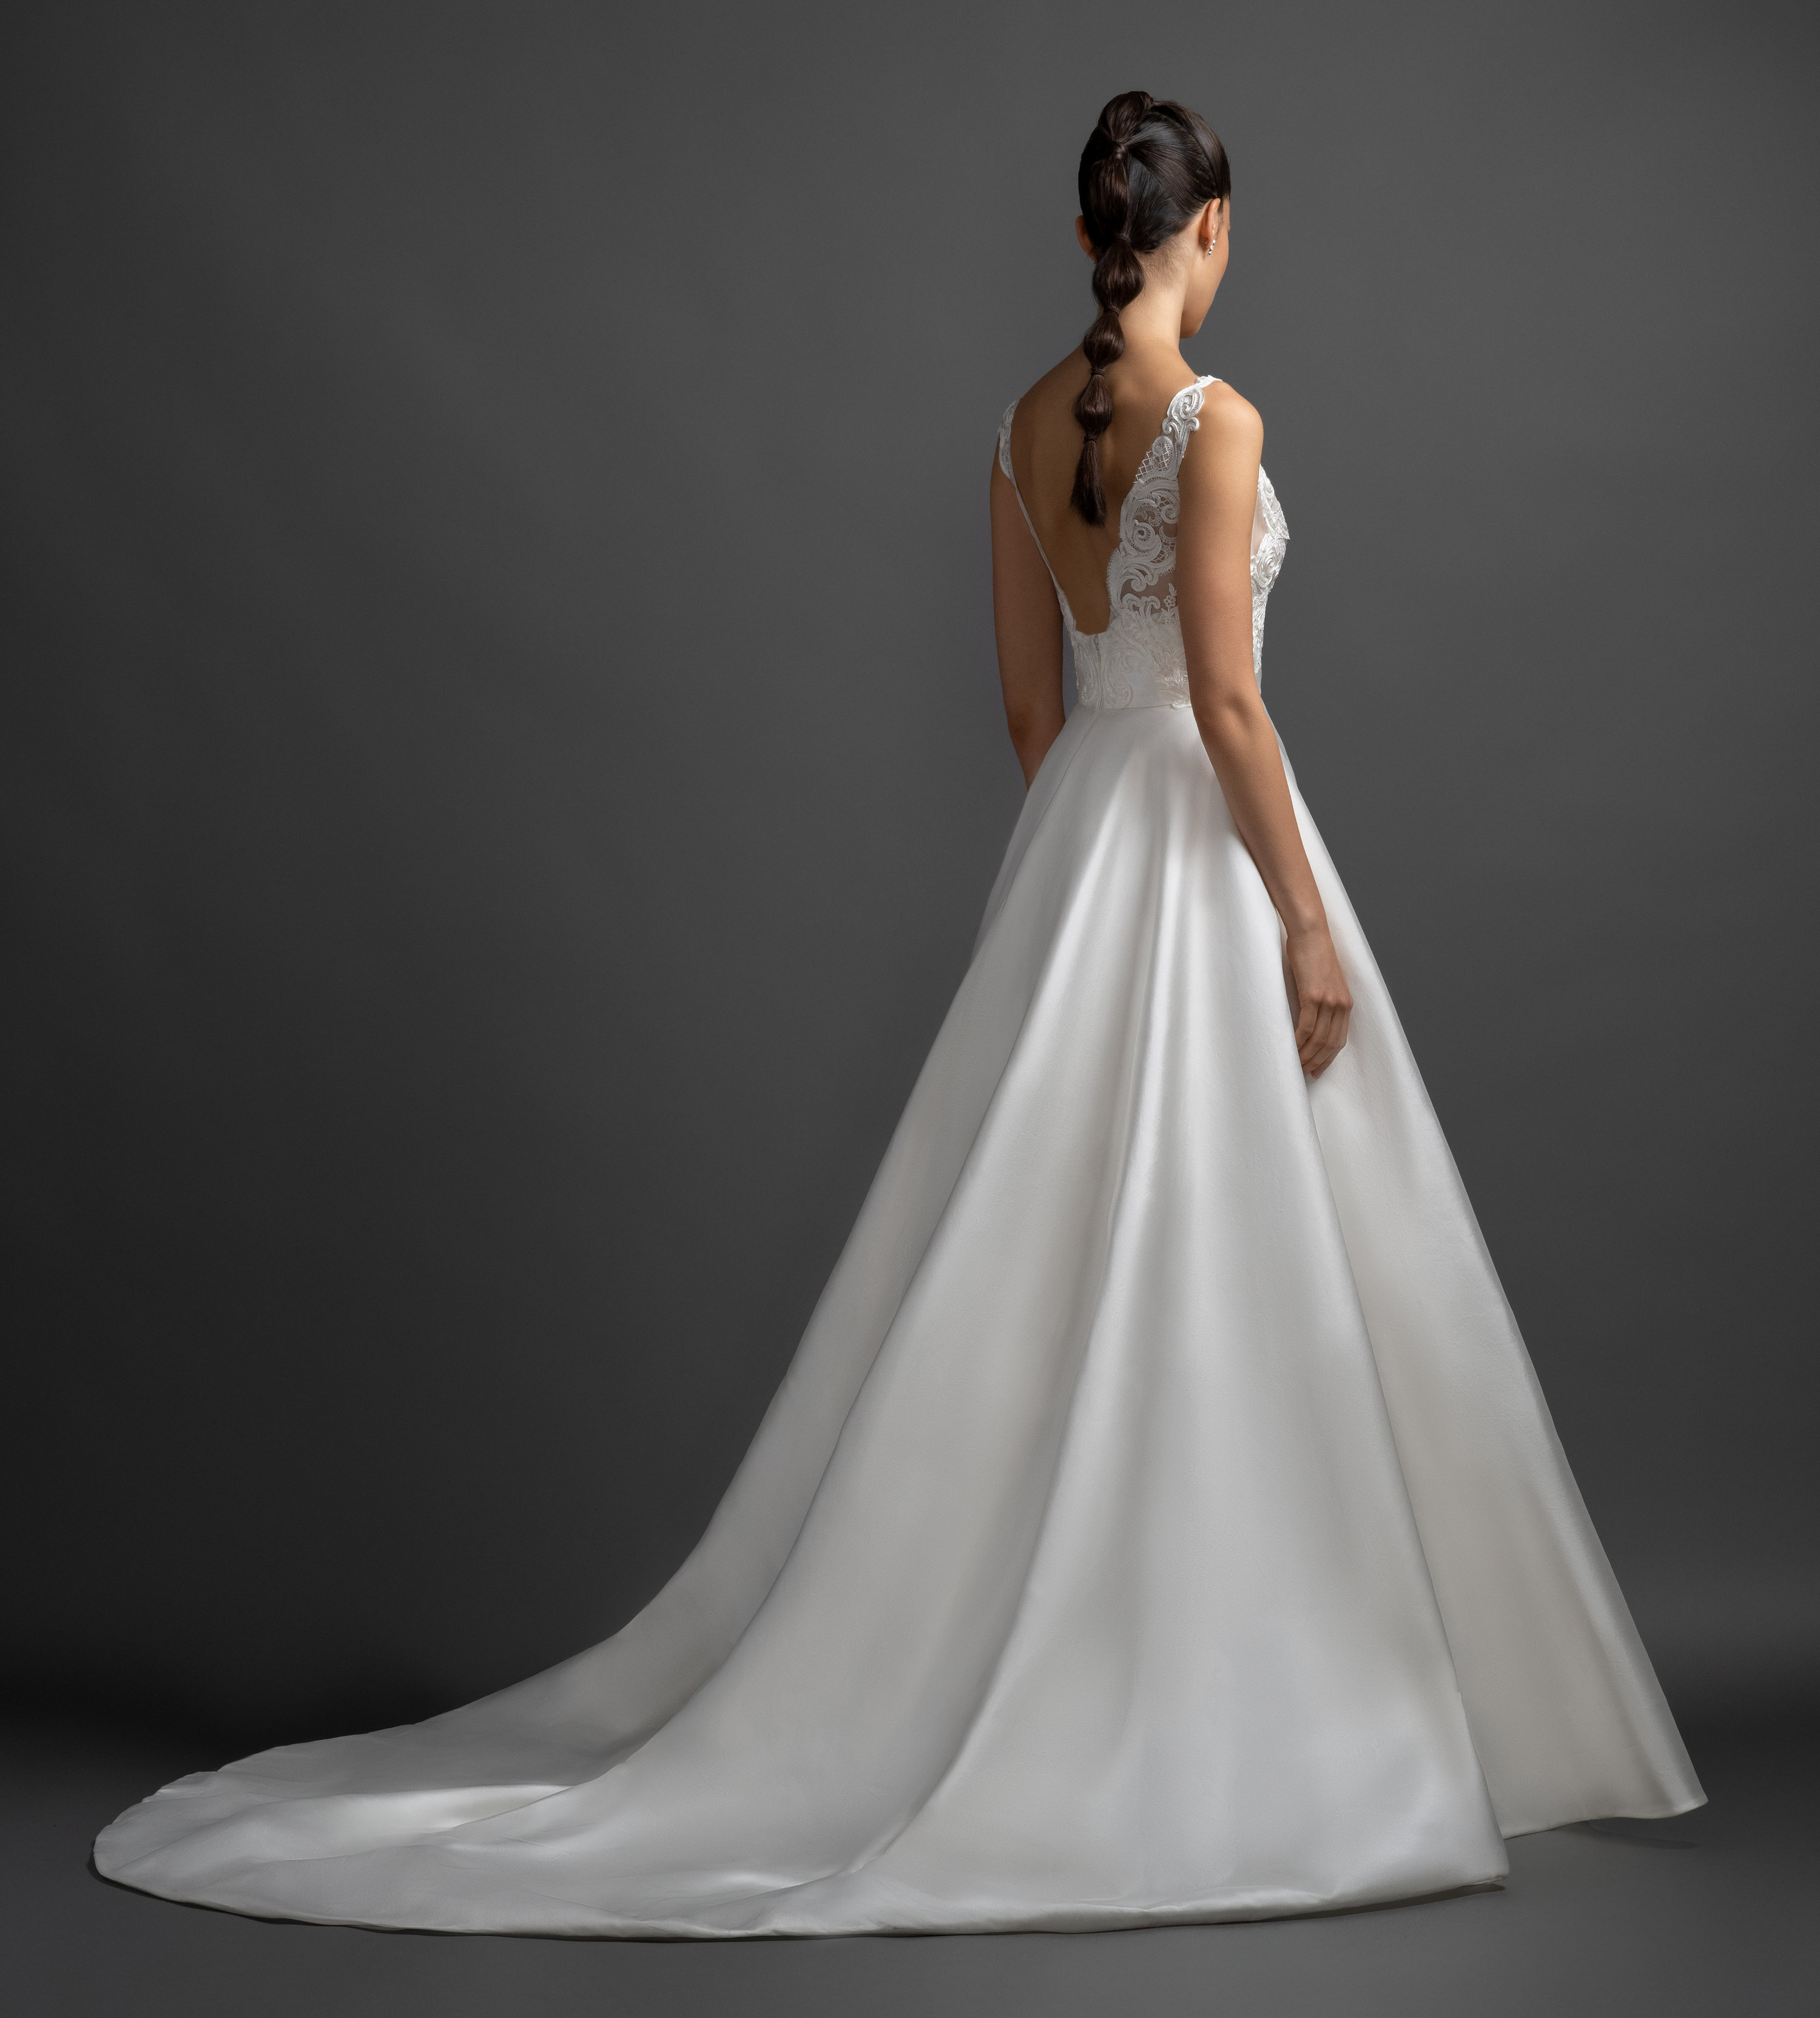 da0b98e763 Bridal Gowns and Wedding Dresses by JLM Couture - Style 3905 Rafaela